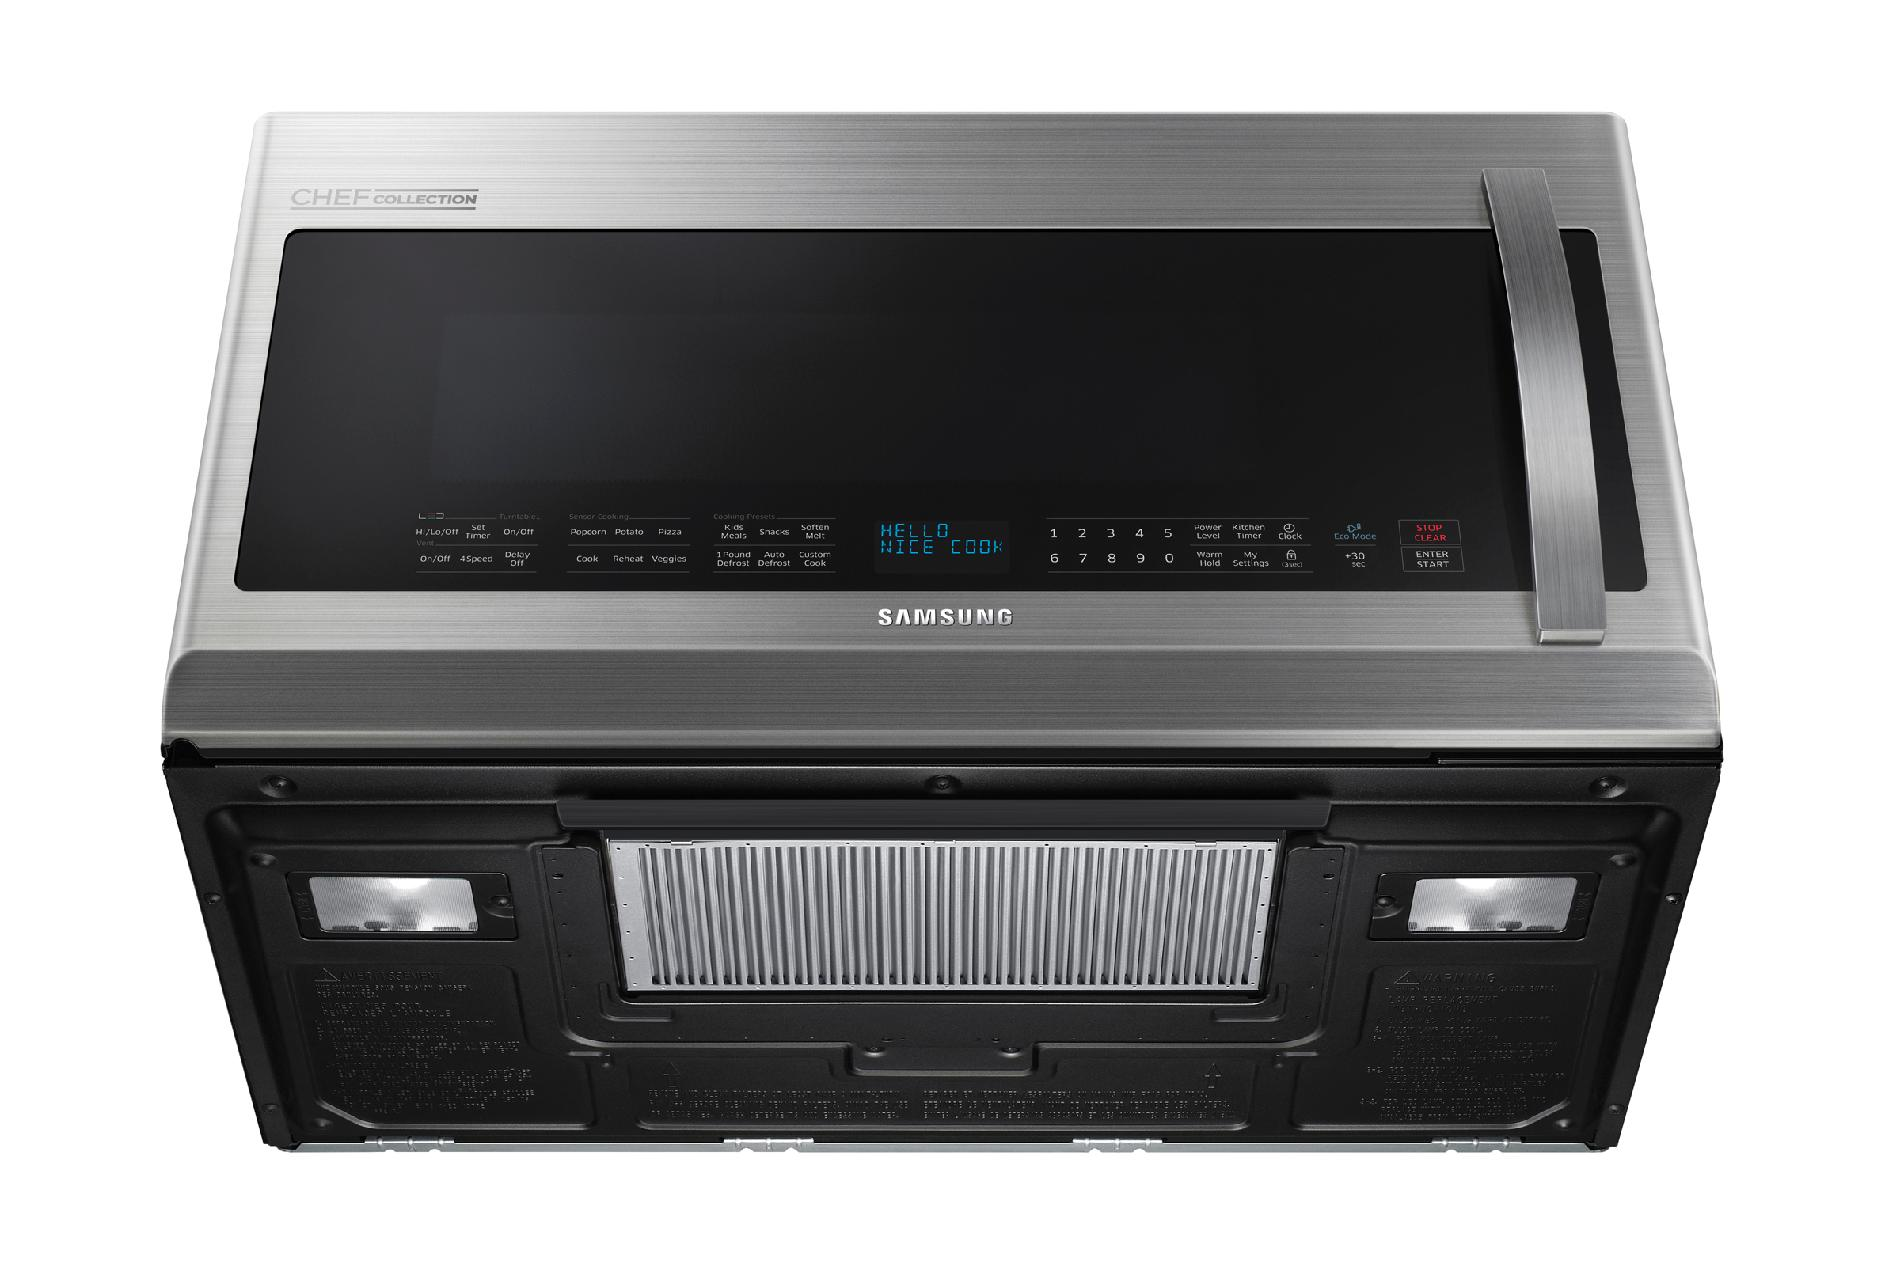 Samsung 2.1 cu. ft. Over-the-Range Chef Collection Microwave w/ Pro-Clean Filter - Stainless Steel